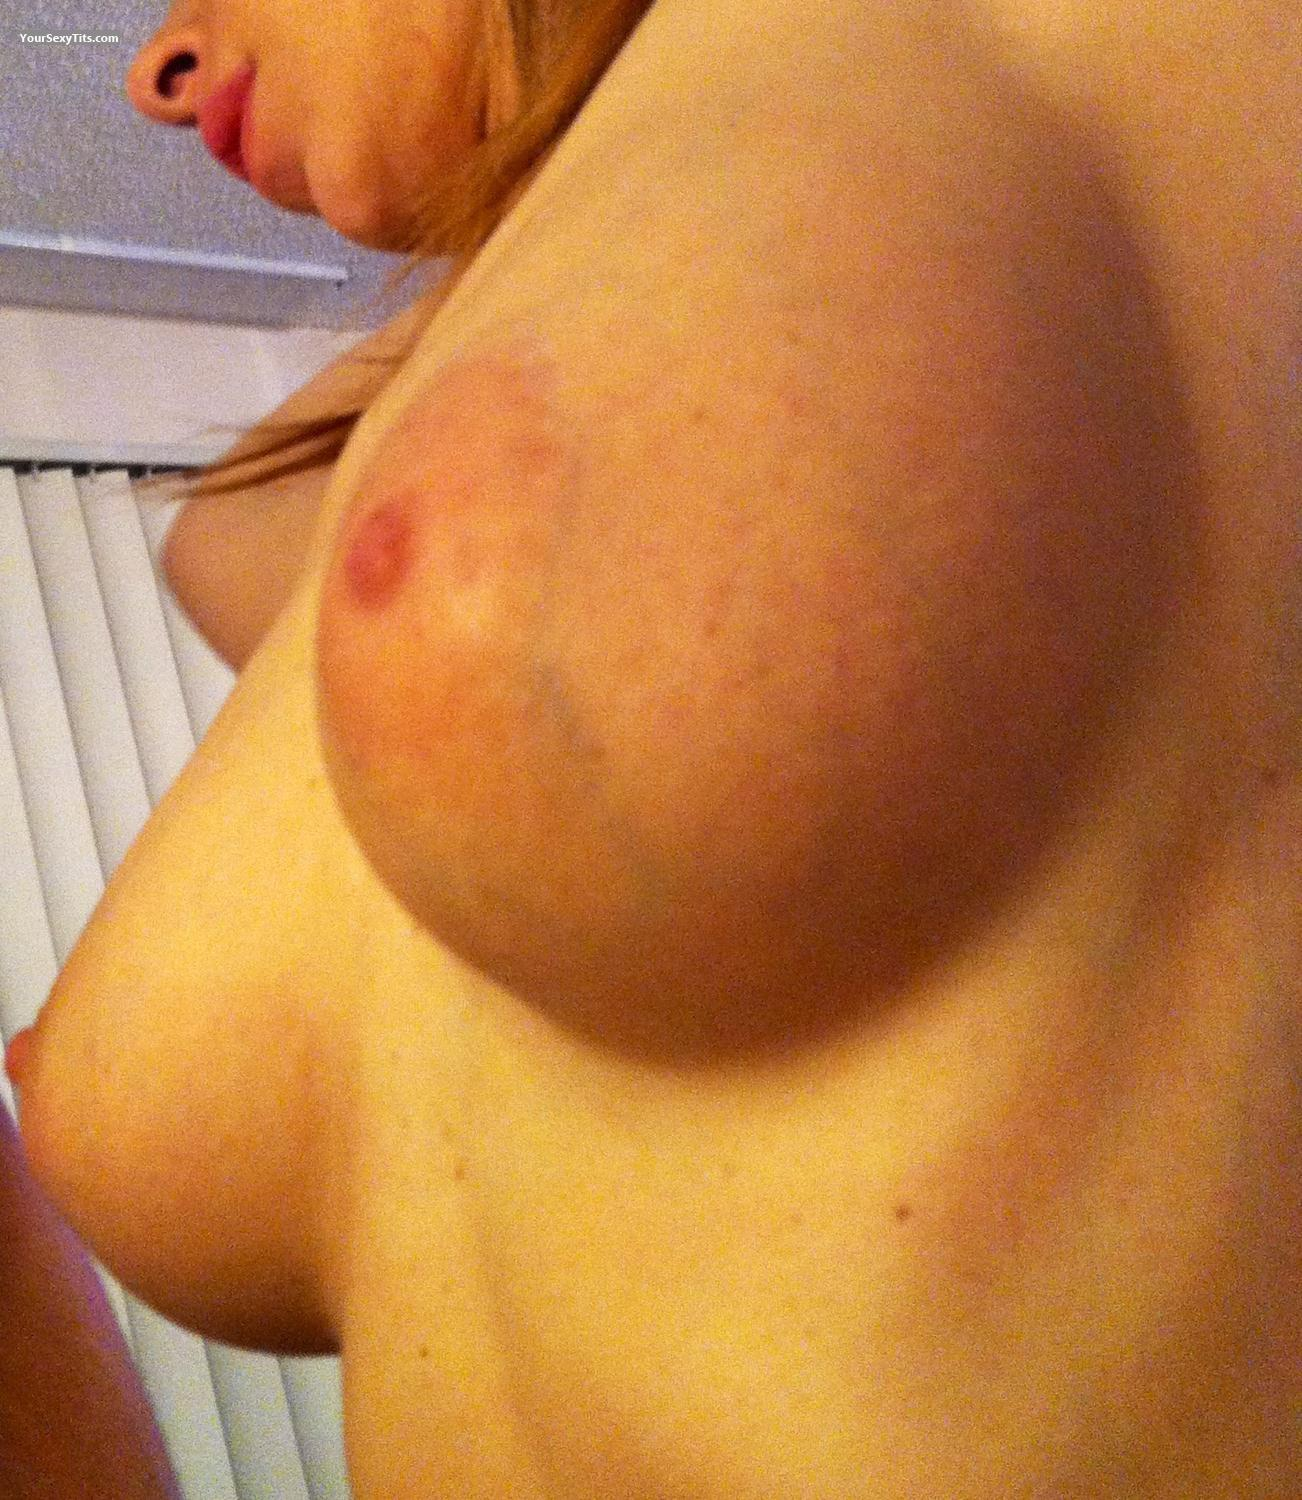 Tit Flash: Big Tits By IPhone - Jane from United States